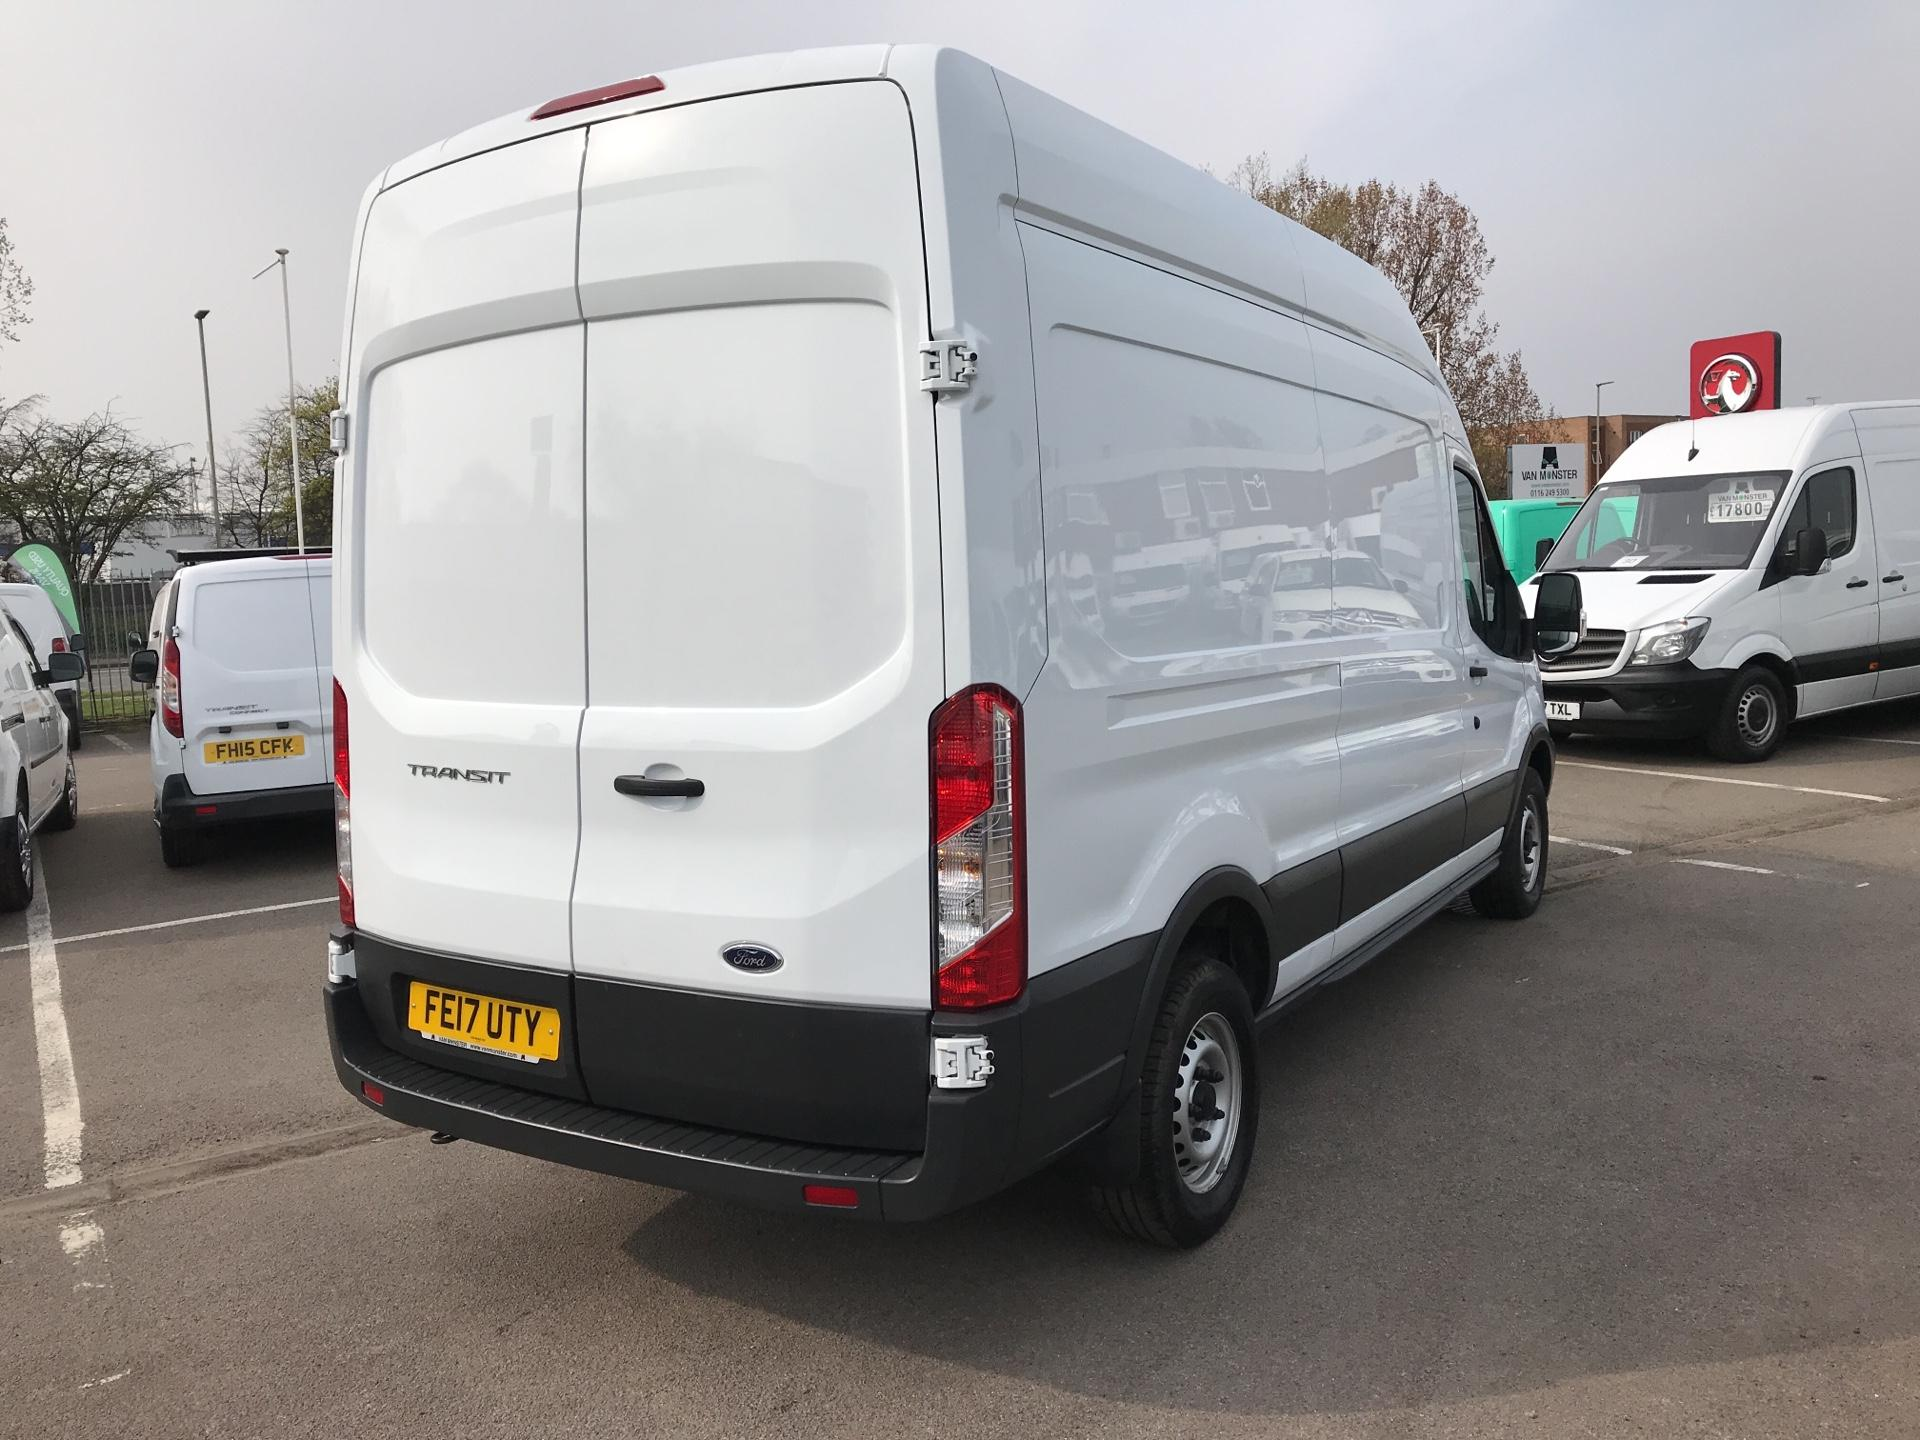 2017 Ford Transit 350 L3 H3 VAN 130PS EURO 6 (FE17UTY) Image 3